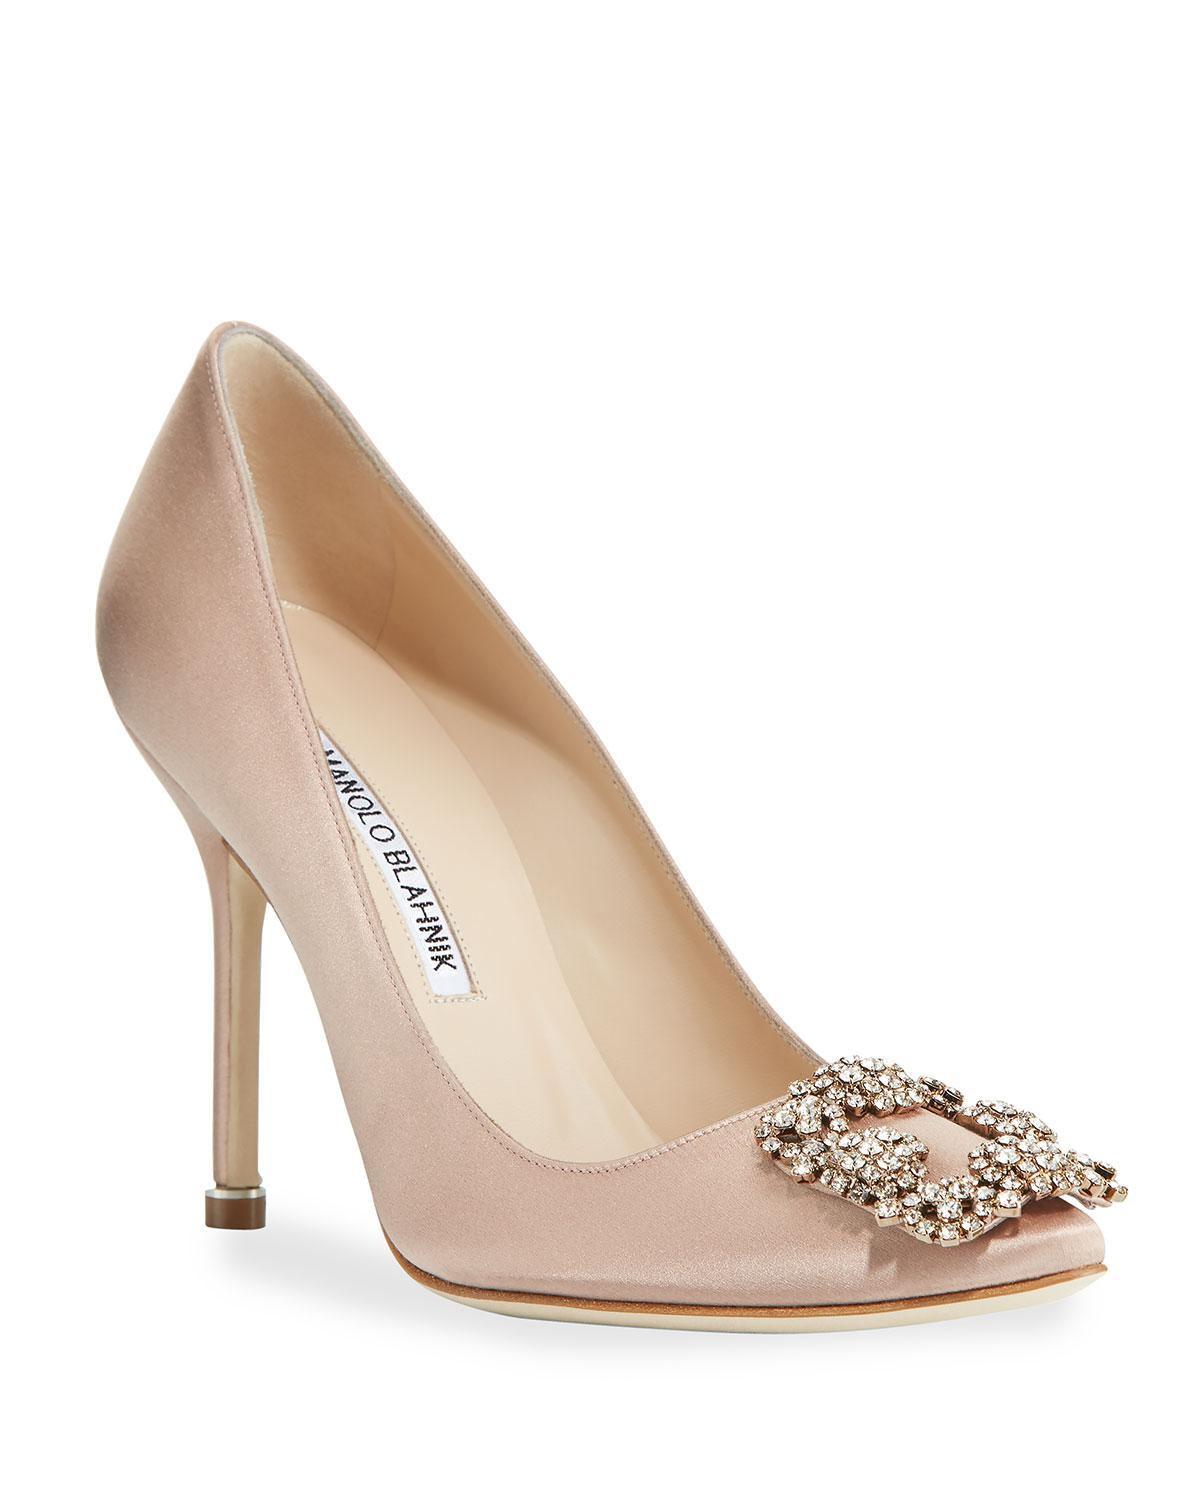 21992a3b989 Lyst - Manolo Blahnik Hangisi 105mm Satin Pumps in Natural